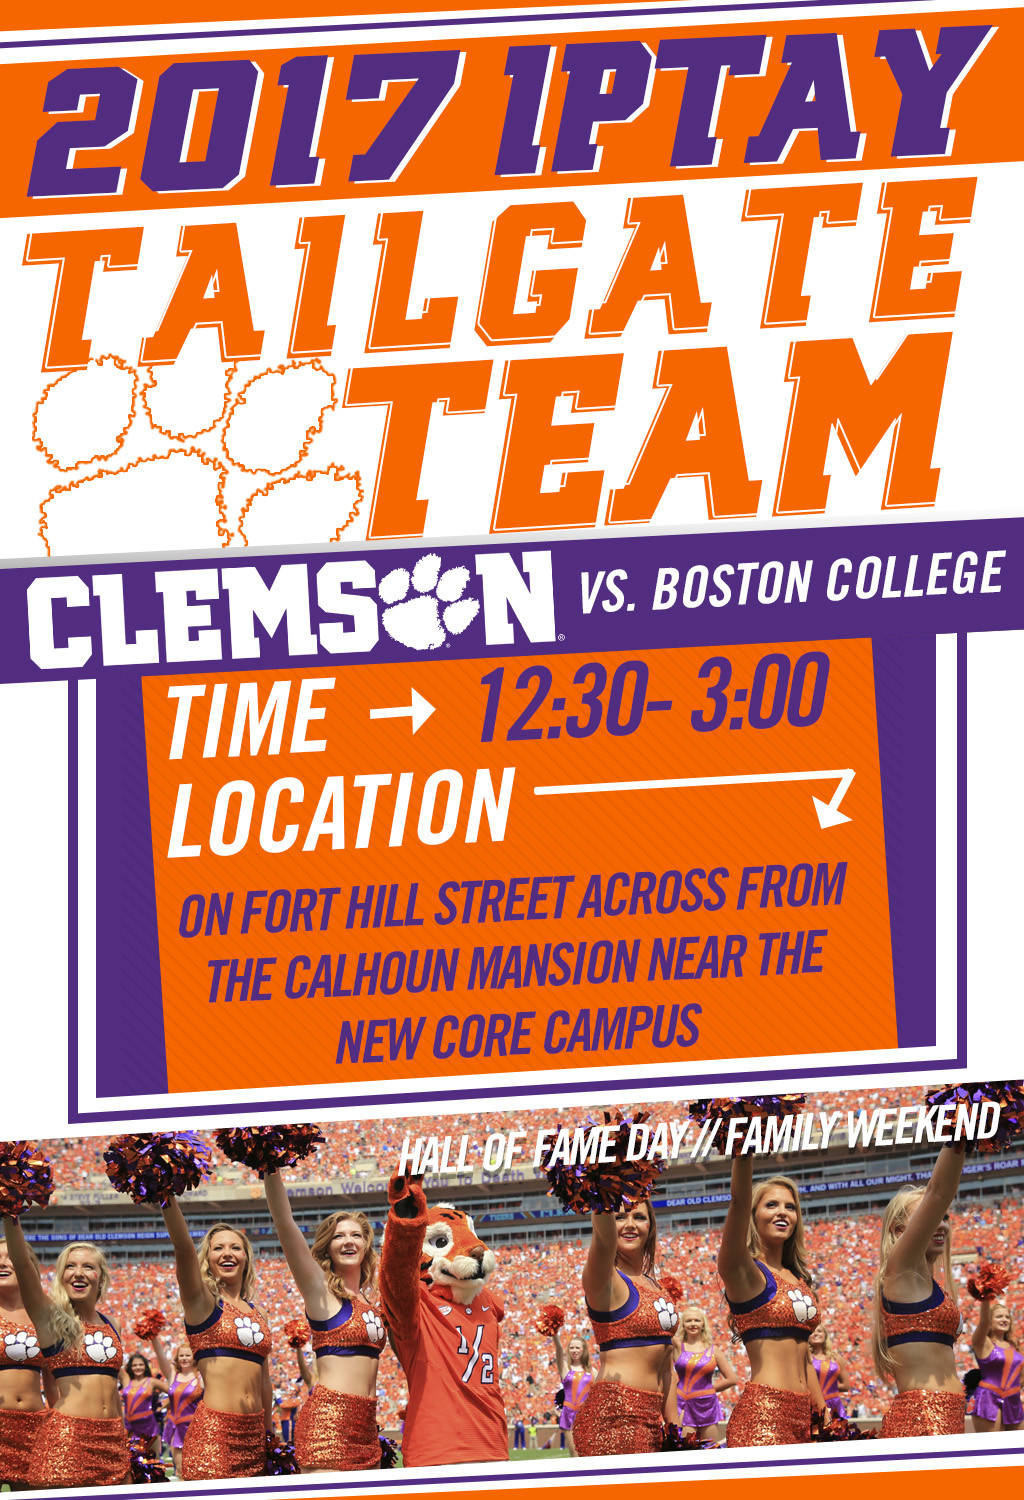 Tailgate Team Rolls Toward Core Campus For Saturday's ACC Divisional Match-up